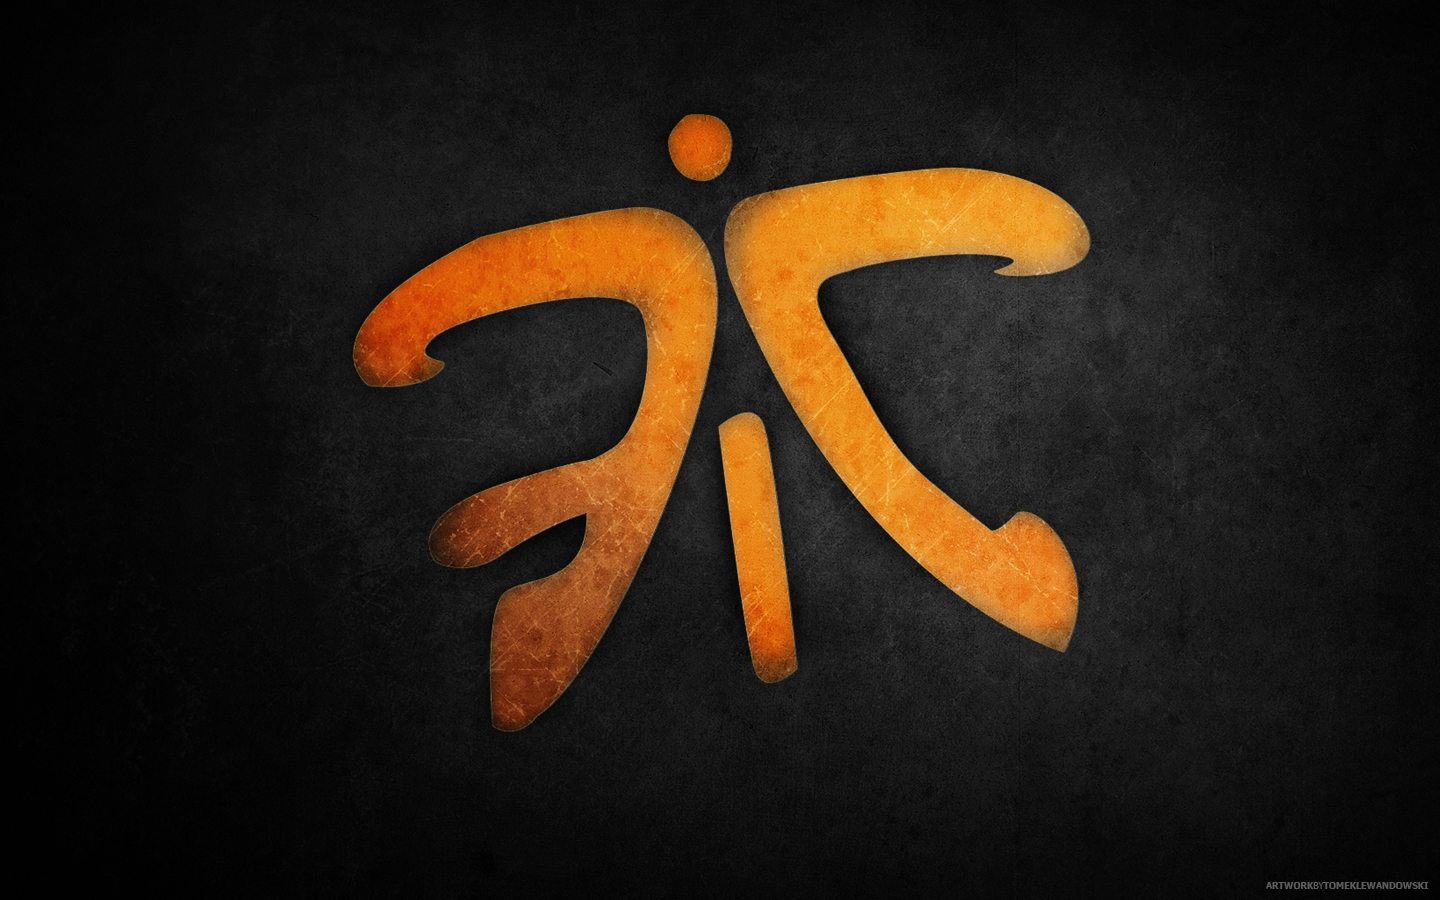 Csgo Wallpaper Hd Fnatic Unveils Partnership With China S B O O T Mmoexaminer